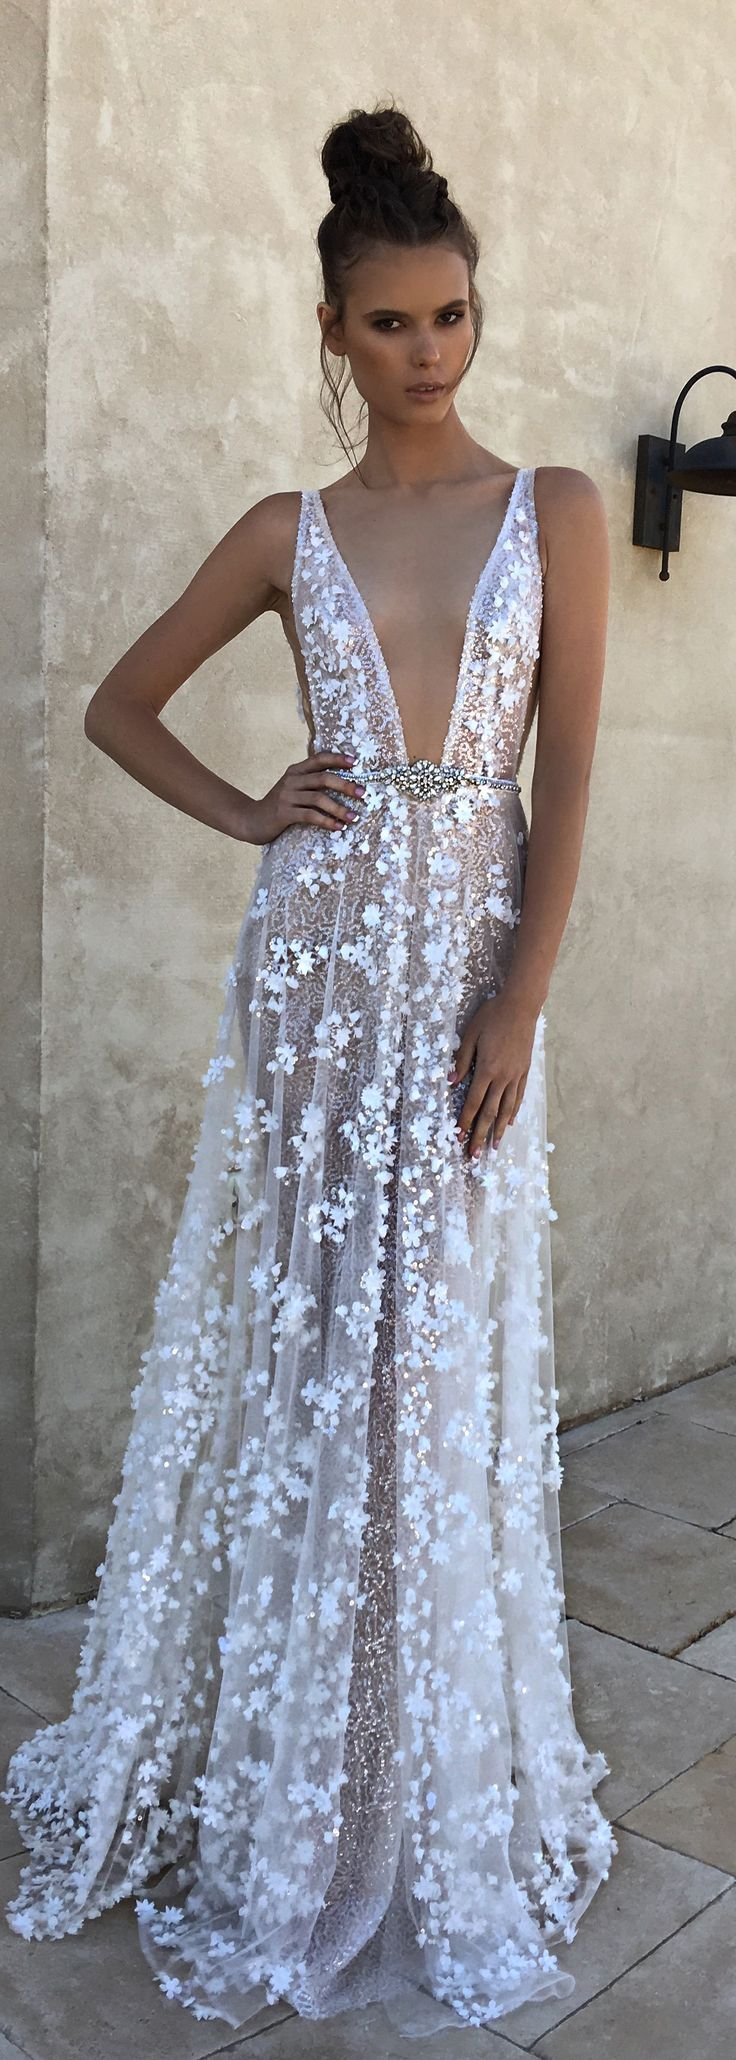 BERTA spring 2018 deep-v neckline full lace beautiful romantic a-line wedding dress with bely - BERTA Spring 2018 Wedding Dresses | @bertabridal